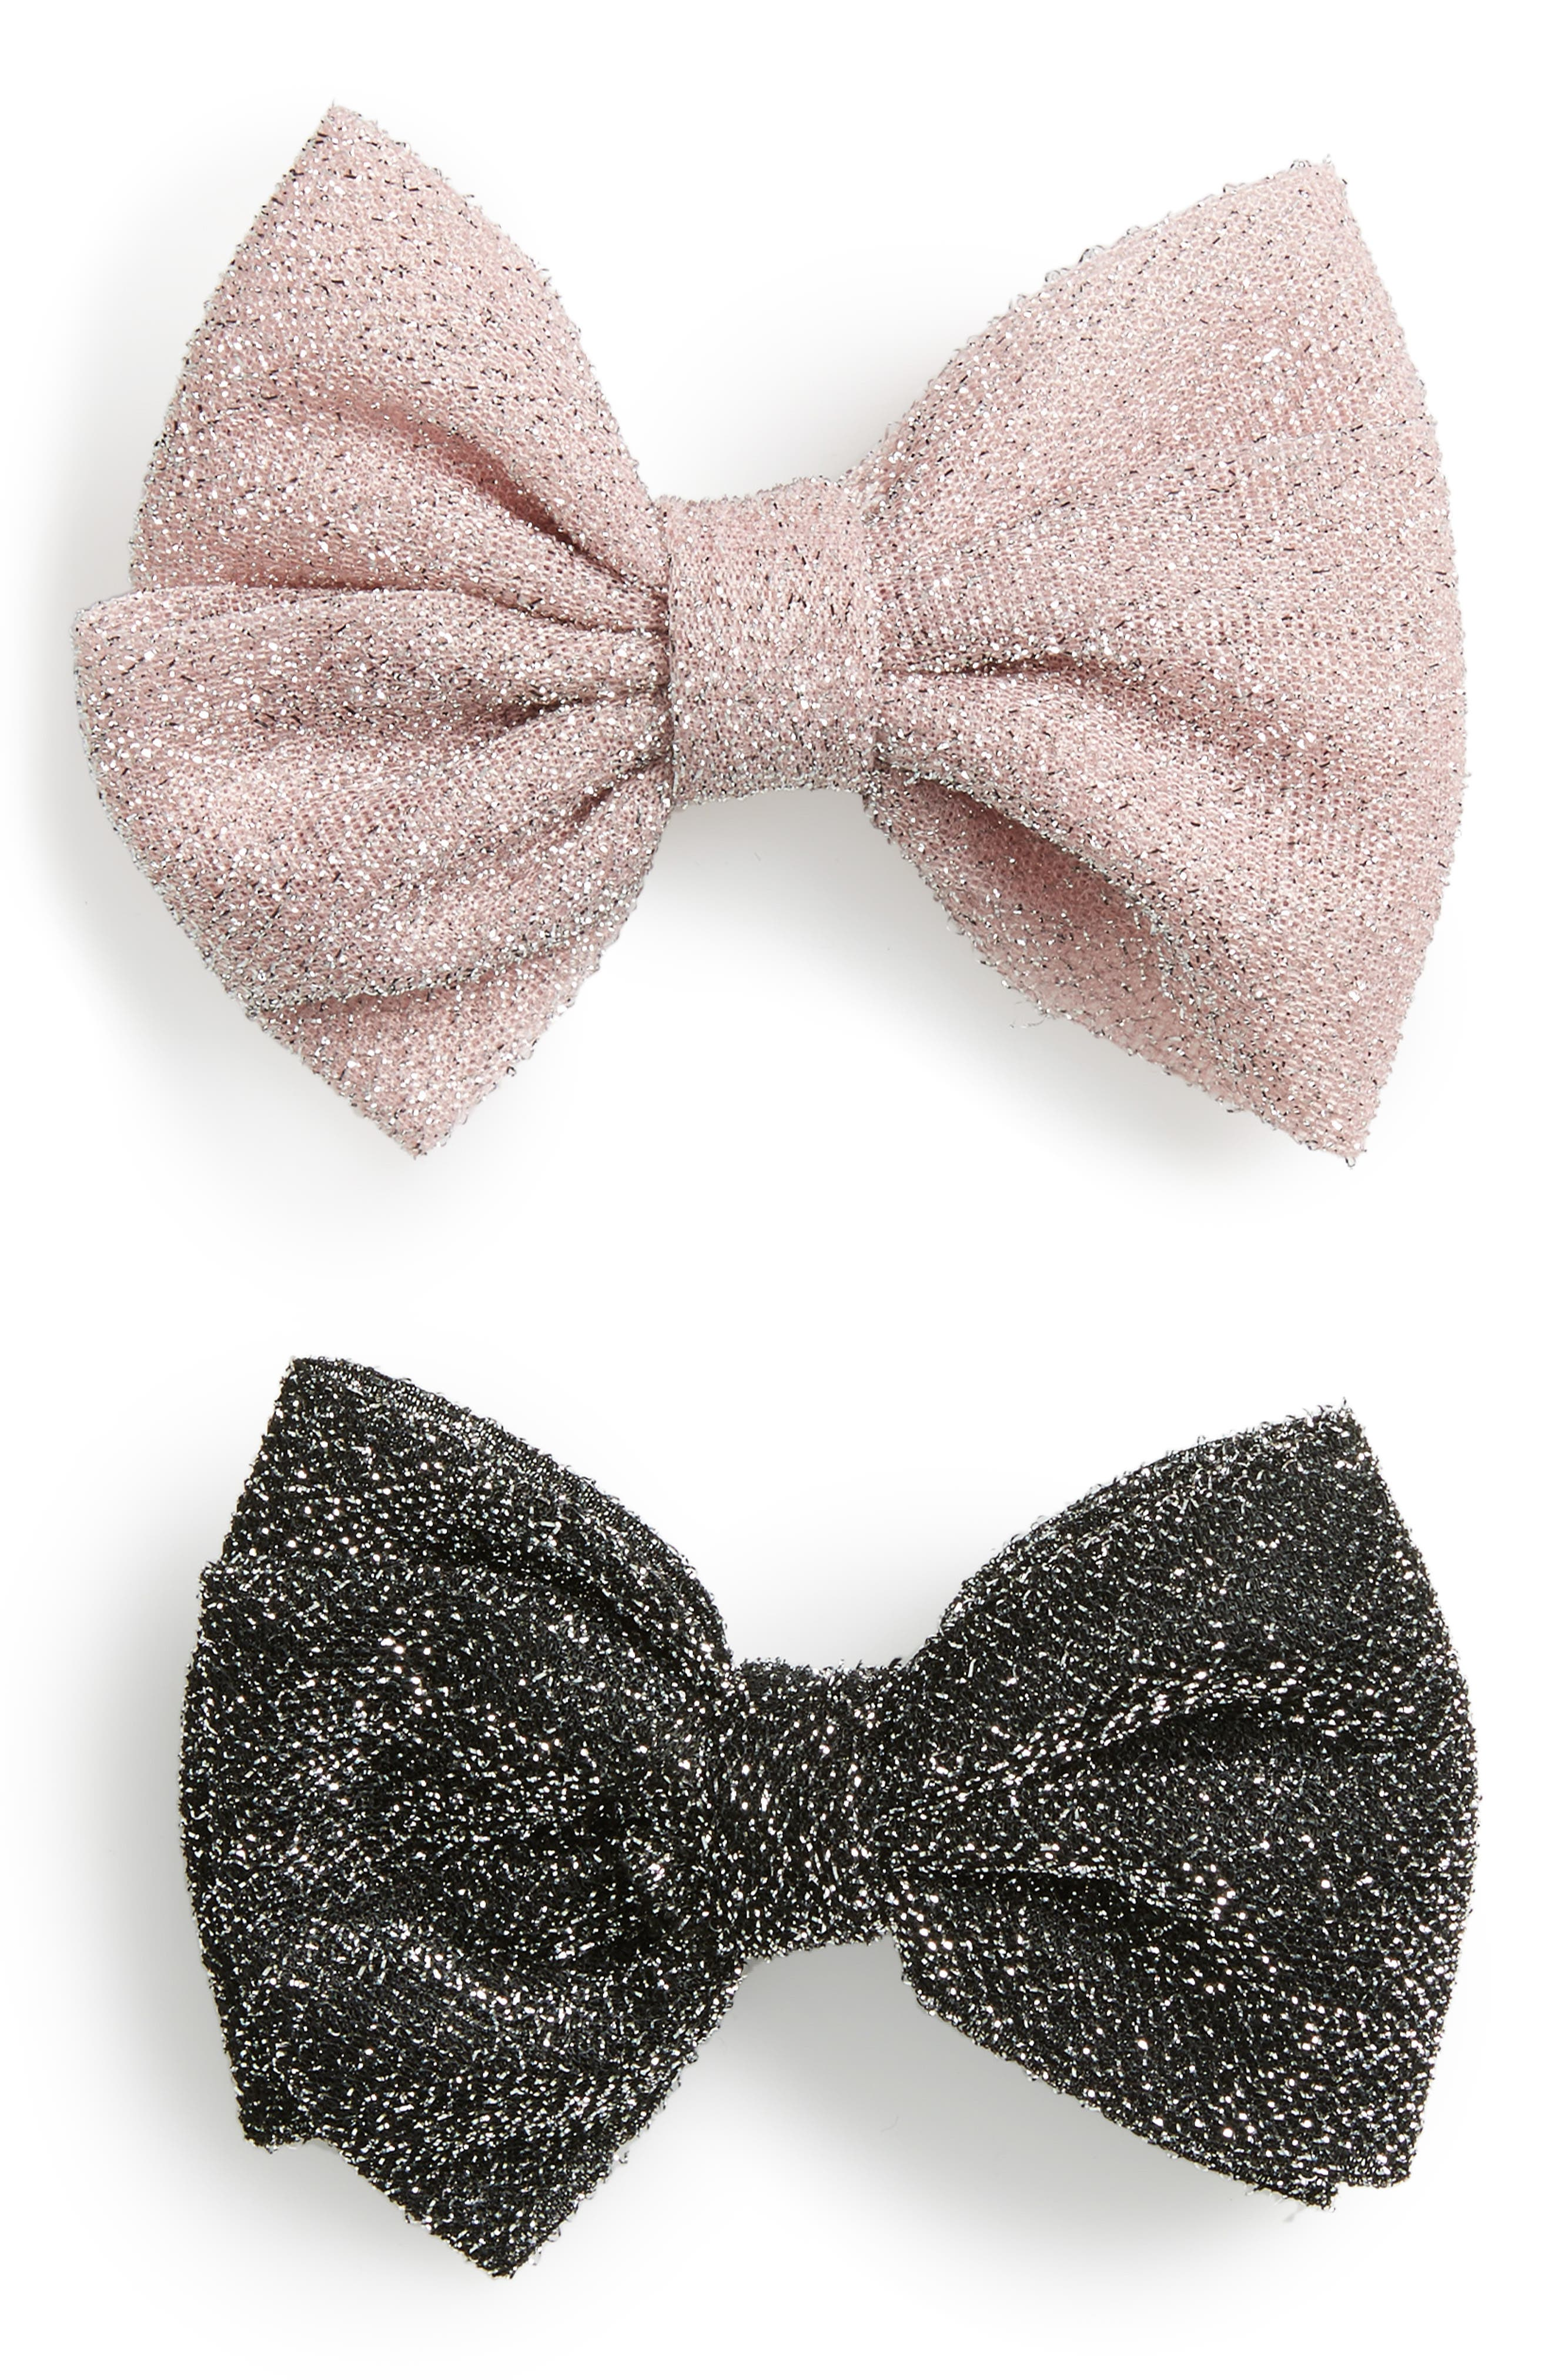 Main Image - PLH Bows & Laces Set of 2 Glitter Bows (Baby Girls)